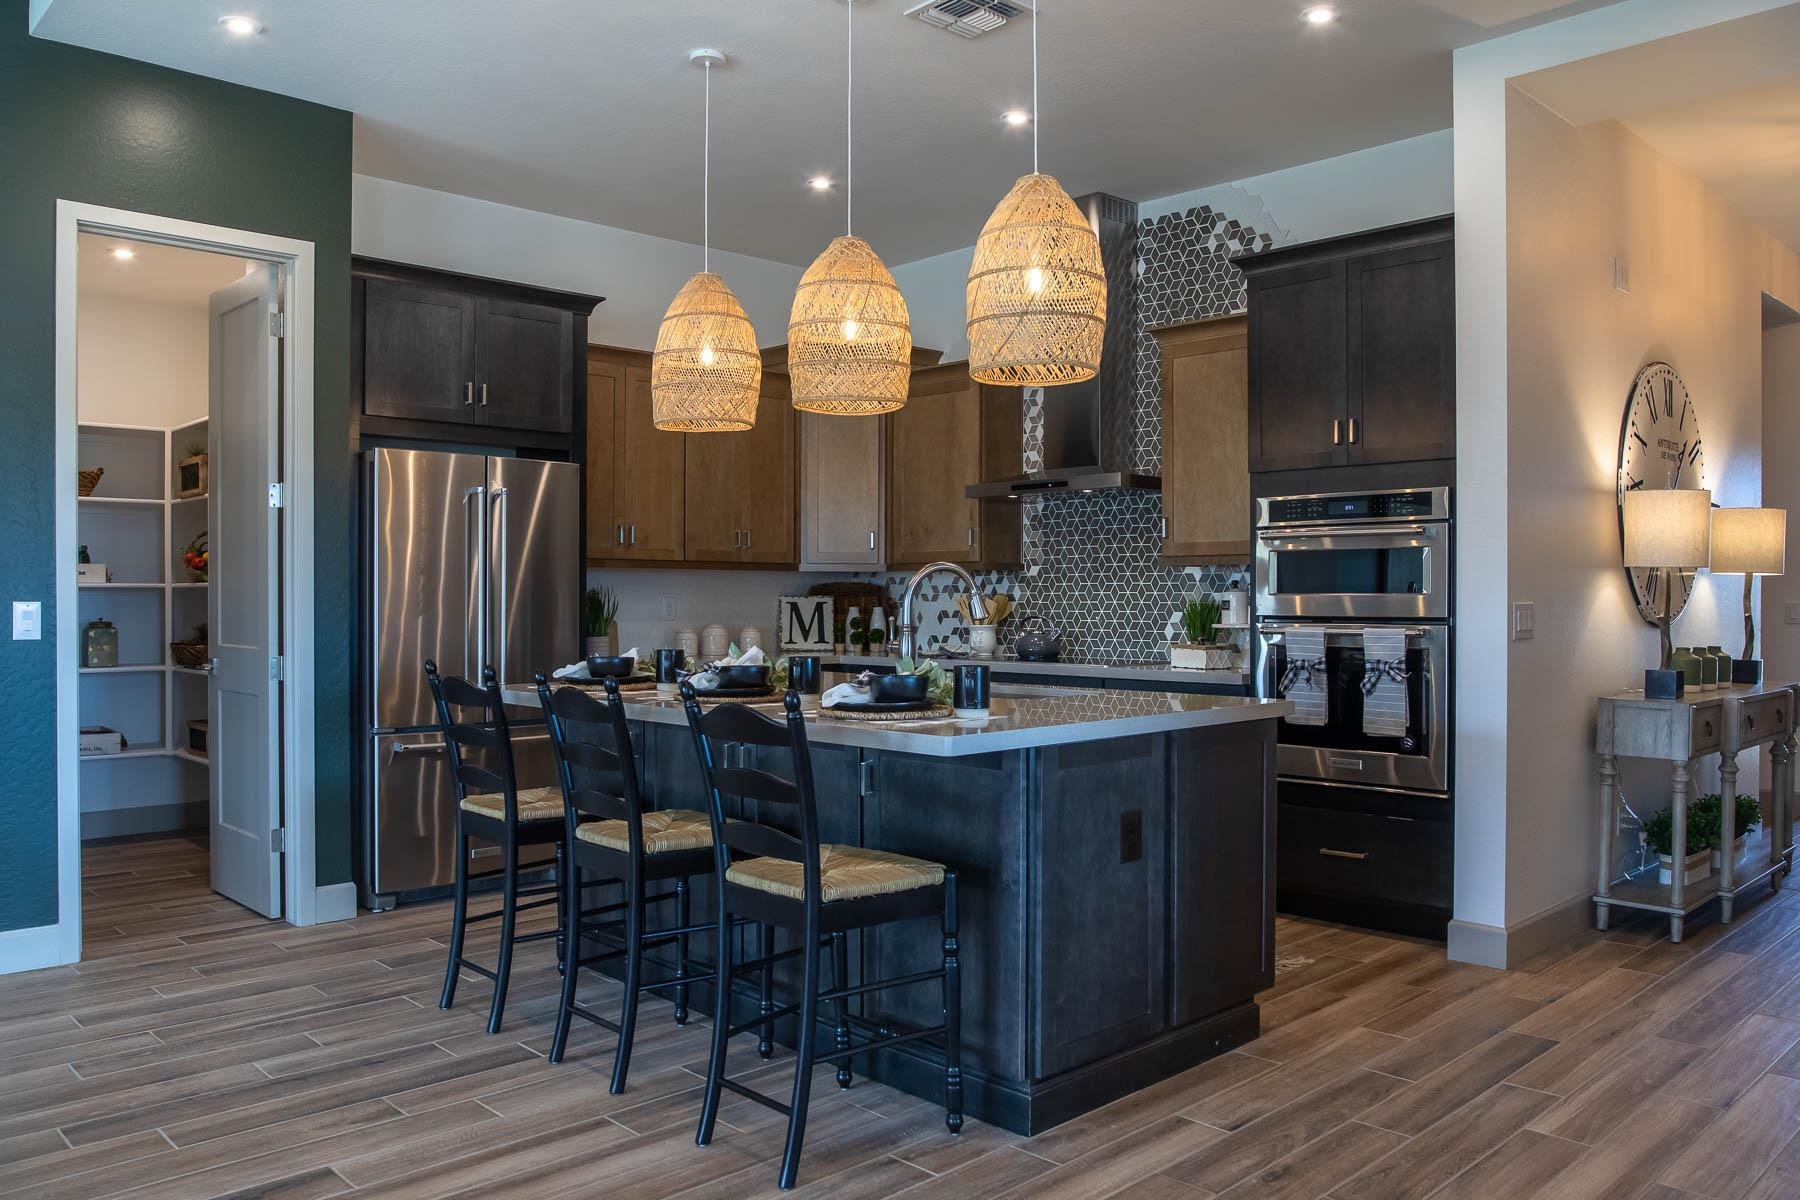 Kitchen featured in the J704 By Mandalay Homes in Prescott, AZ